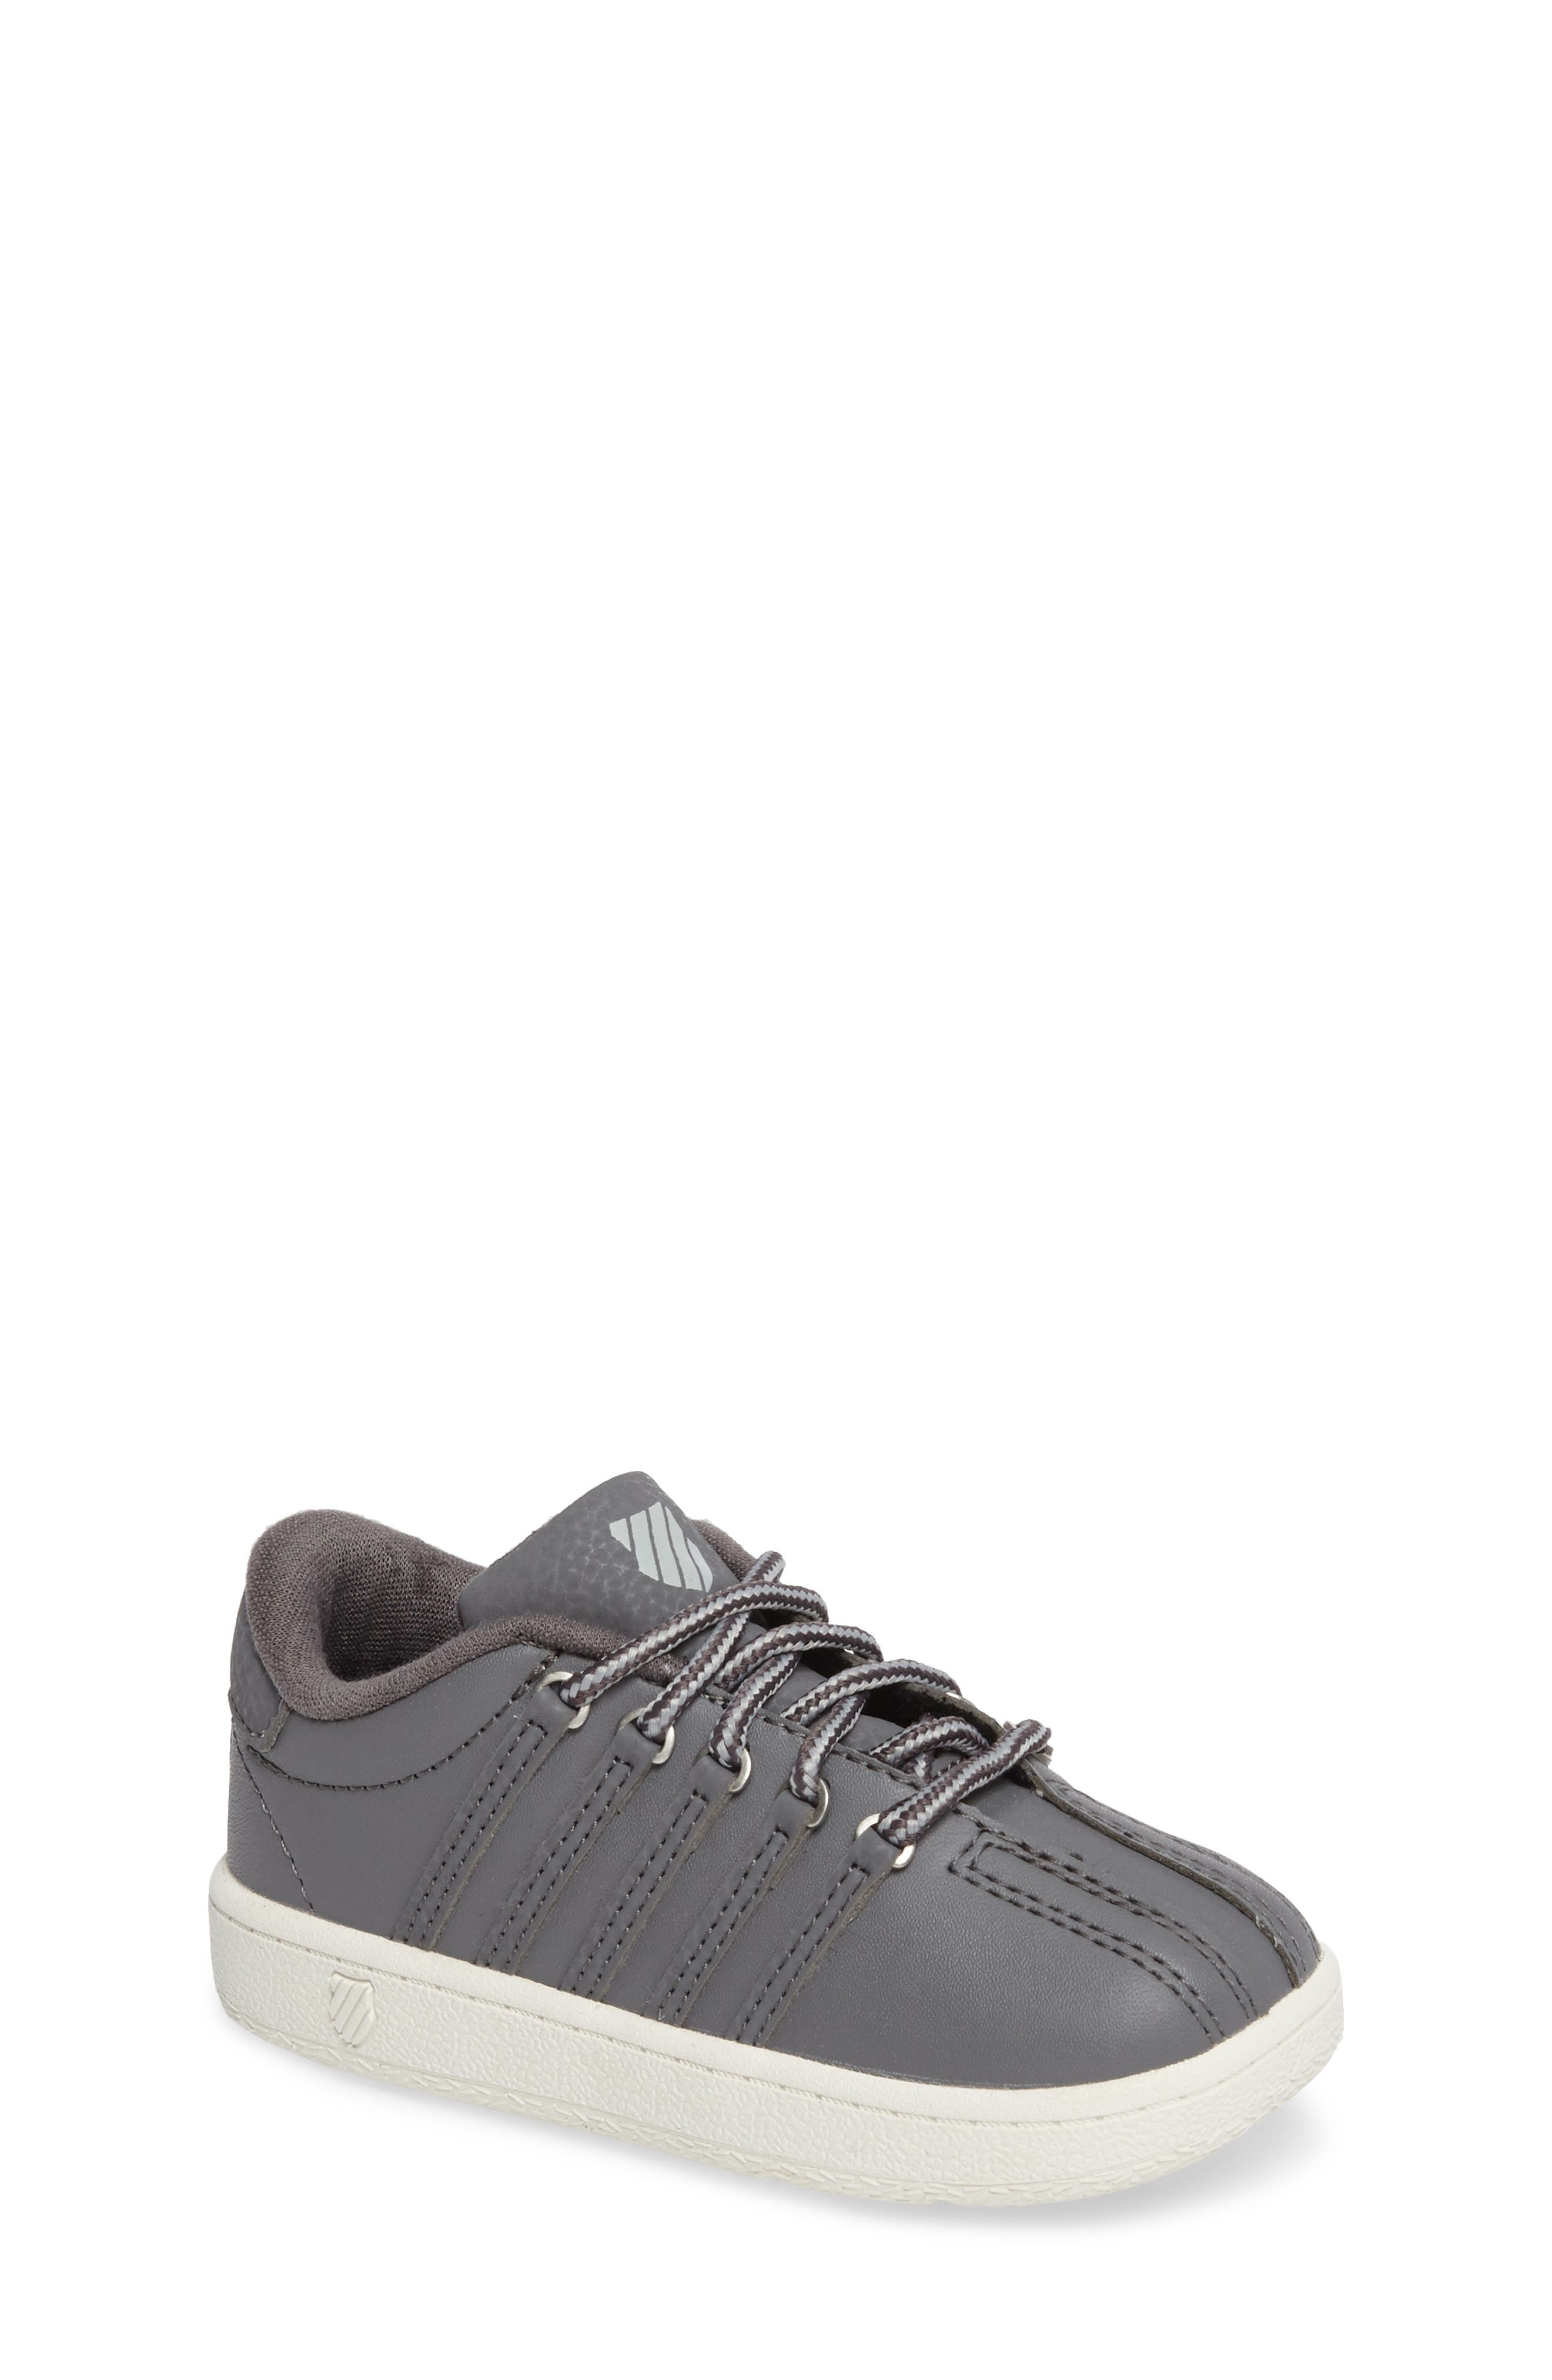 Classic VN Sneaker,                             Main thumbnail 1, color,                             Charcoal/ Storm/ Lily White